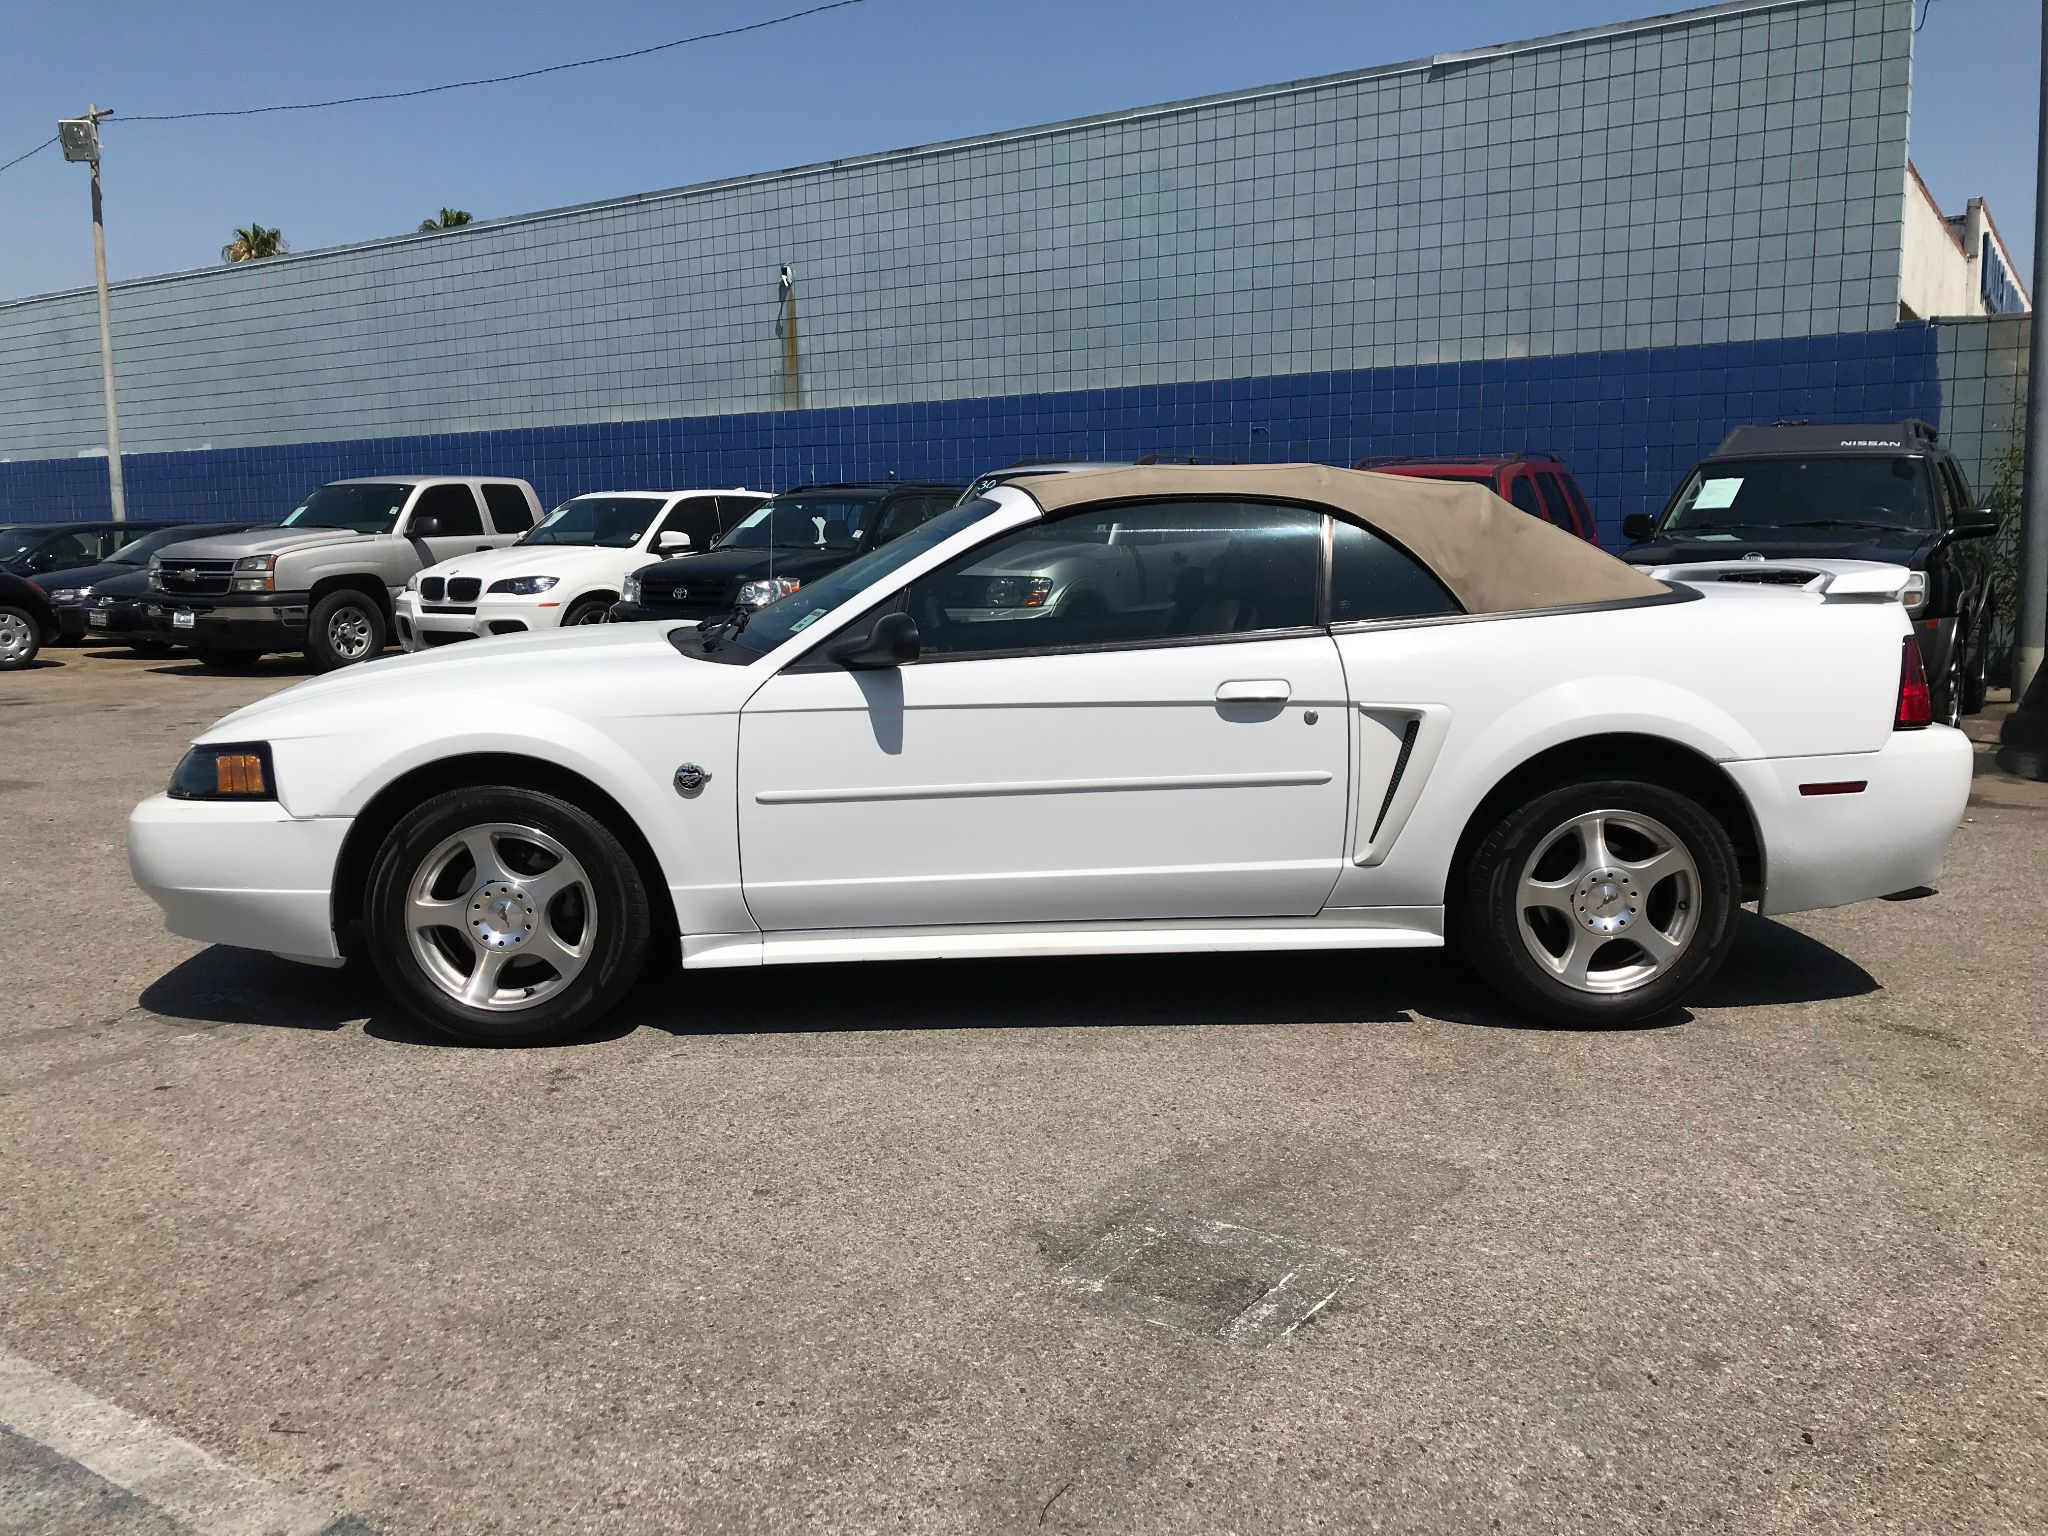 Used 2004 Ford Mustang Premium at City Cars Warehouse INC